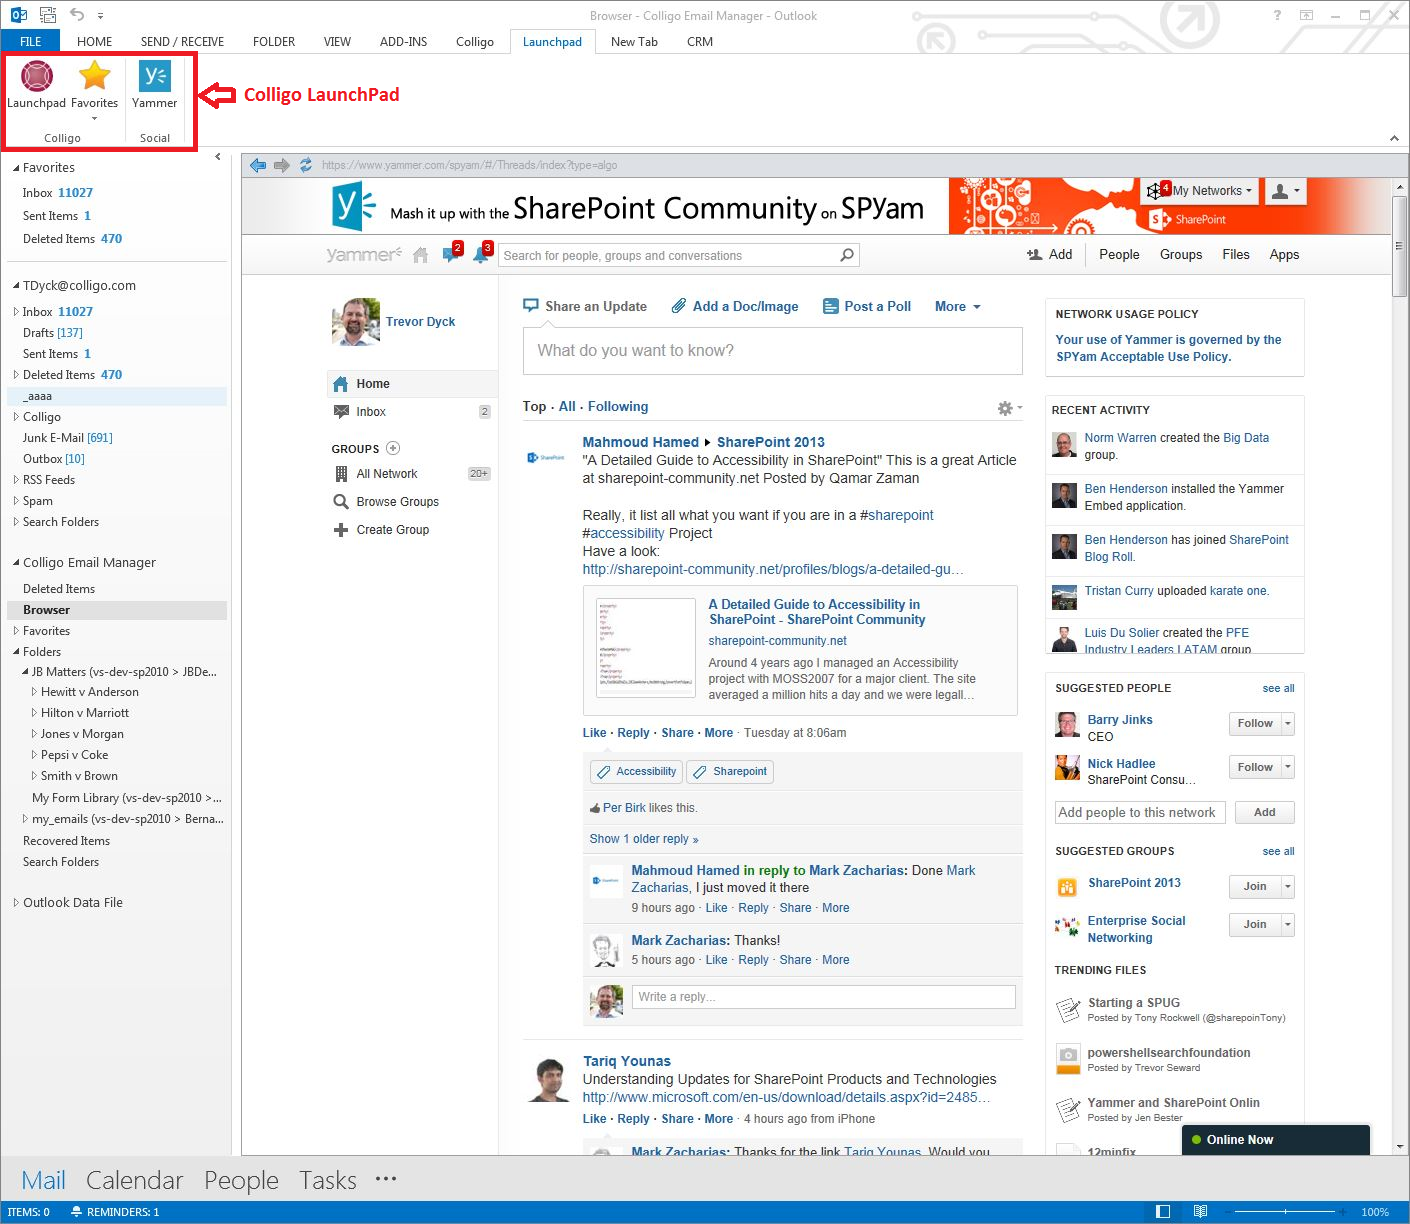 Yammer_Outlook_1_w_LaunchPad_highlight